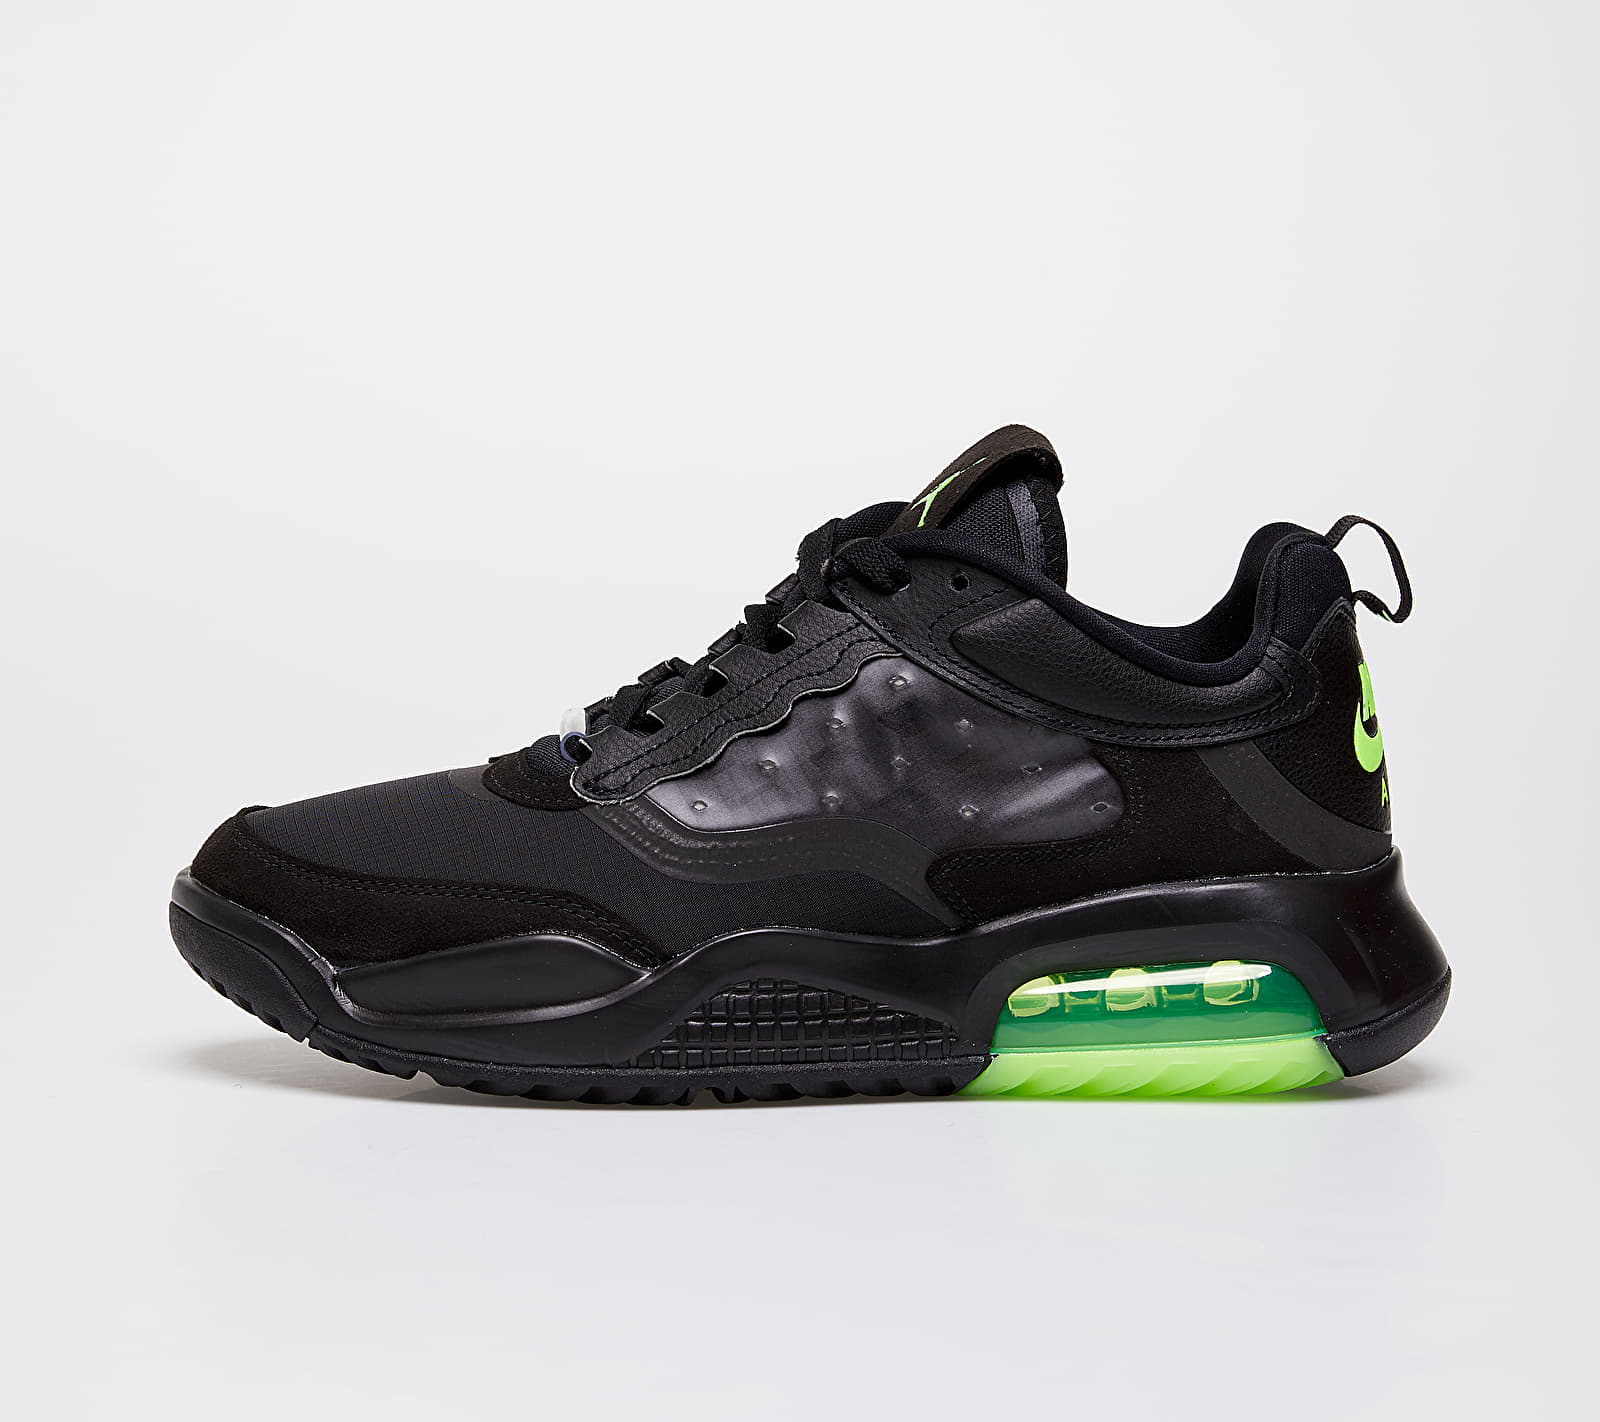 Jordan Max 200 Black/ Electric Green-Black EUR 44.5